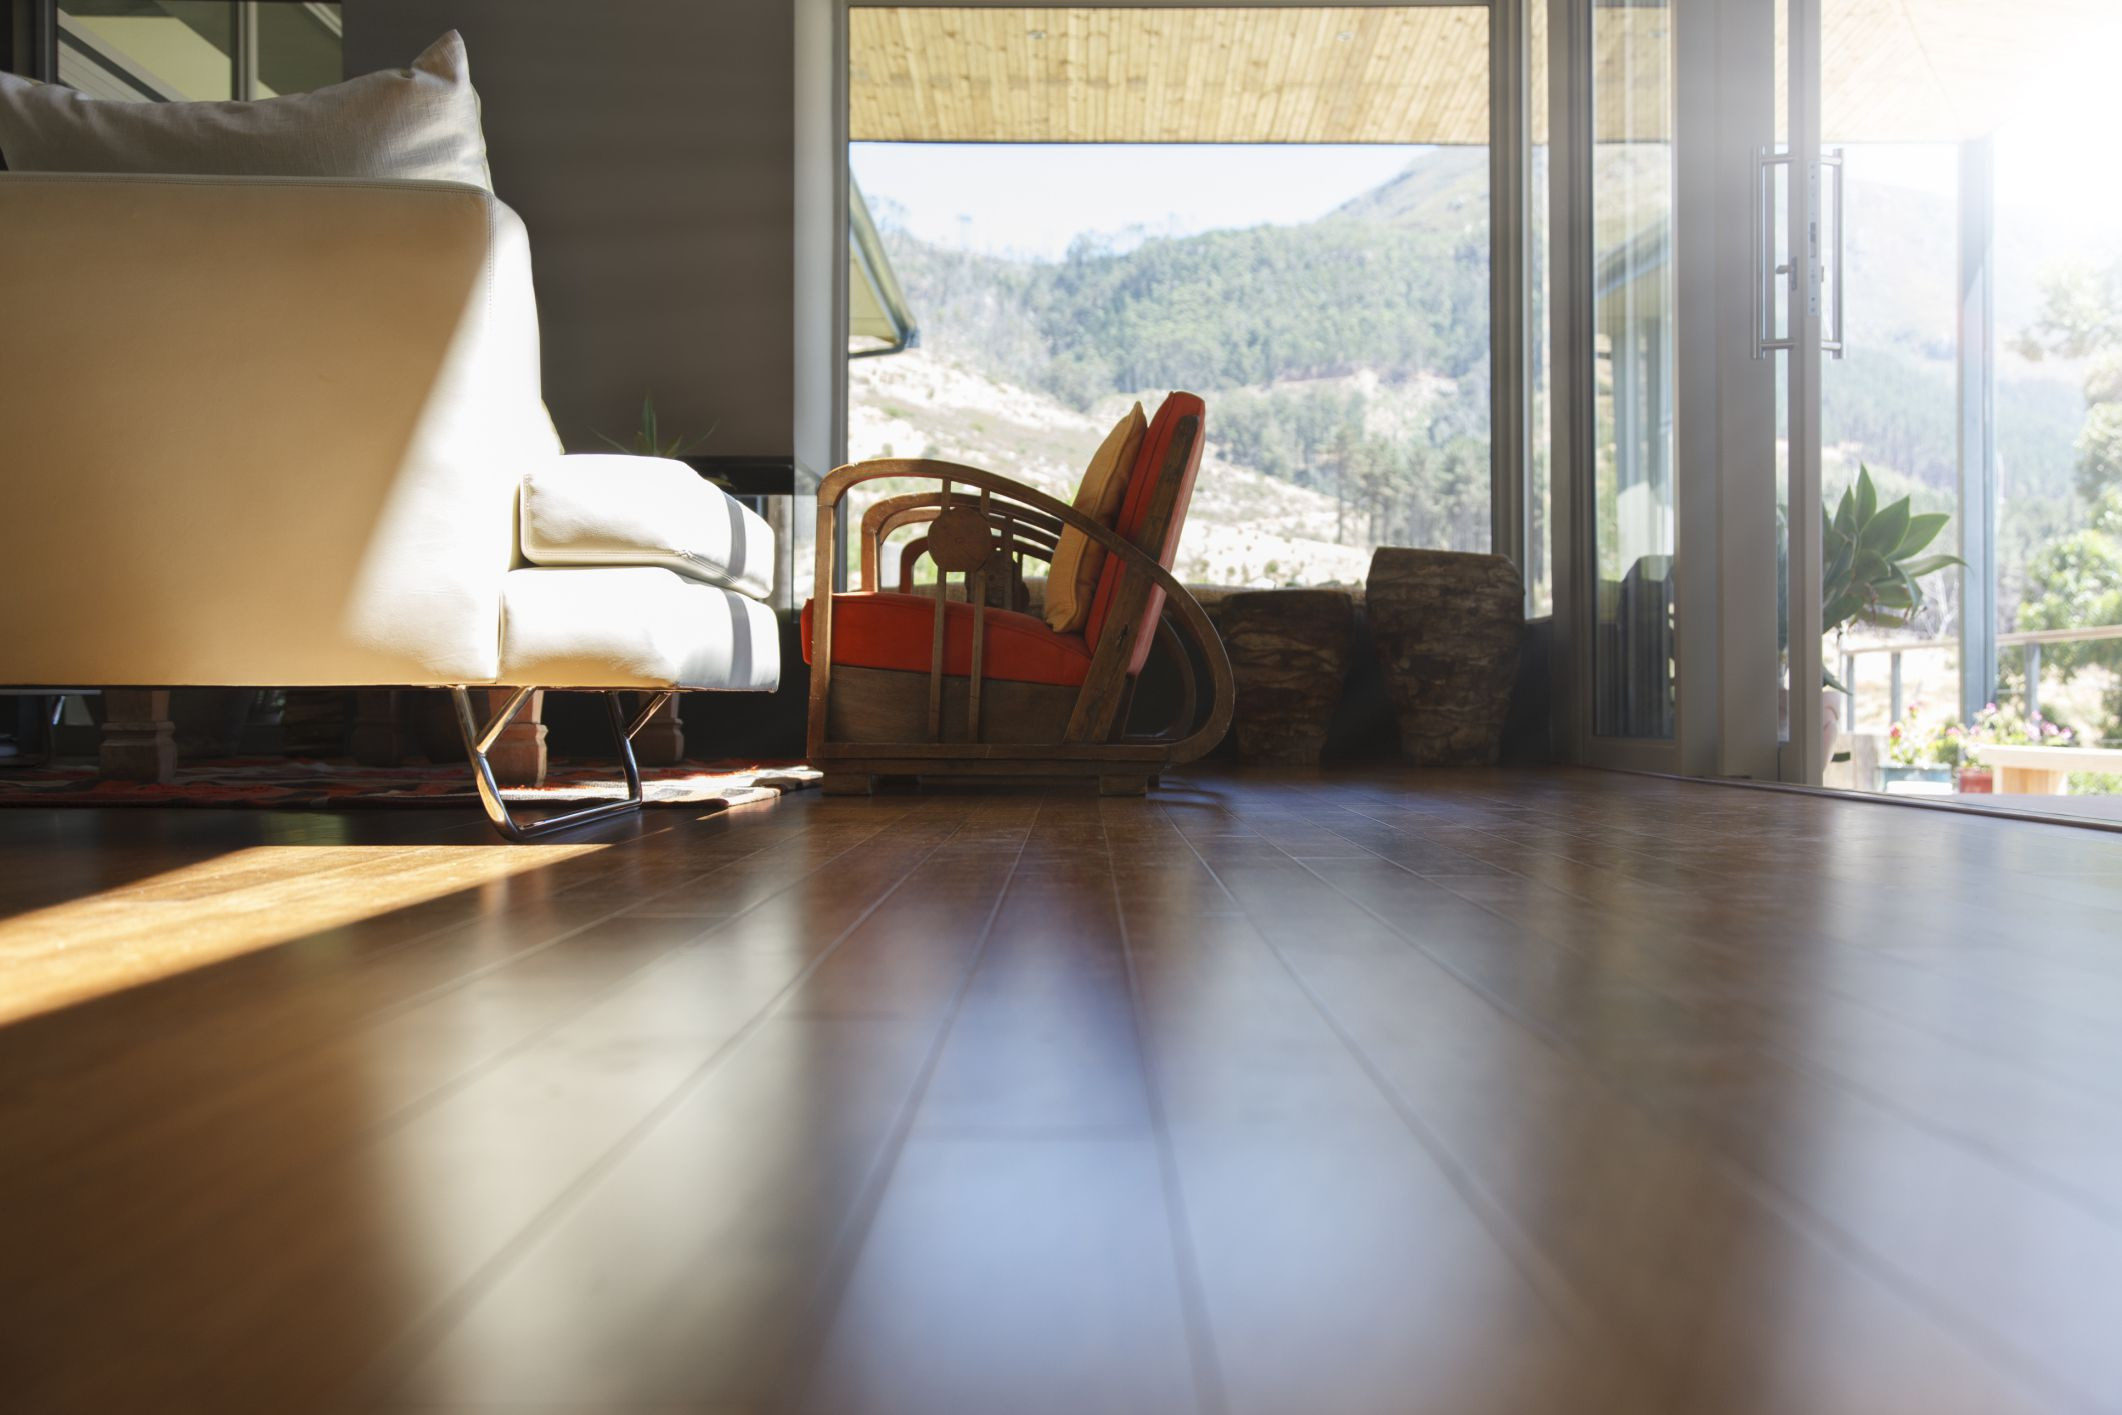 bruce hardwood floor cleaner reviews of pros and cons of bellawood flooring from lumber liquidators with exotic hardwood flooring 525439899 56a49d3a3df78cf77283453d